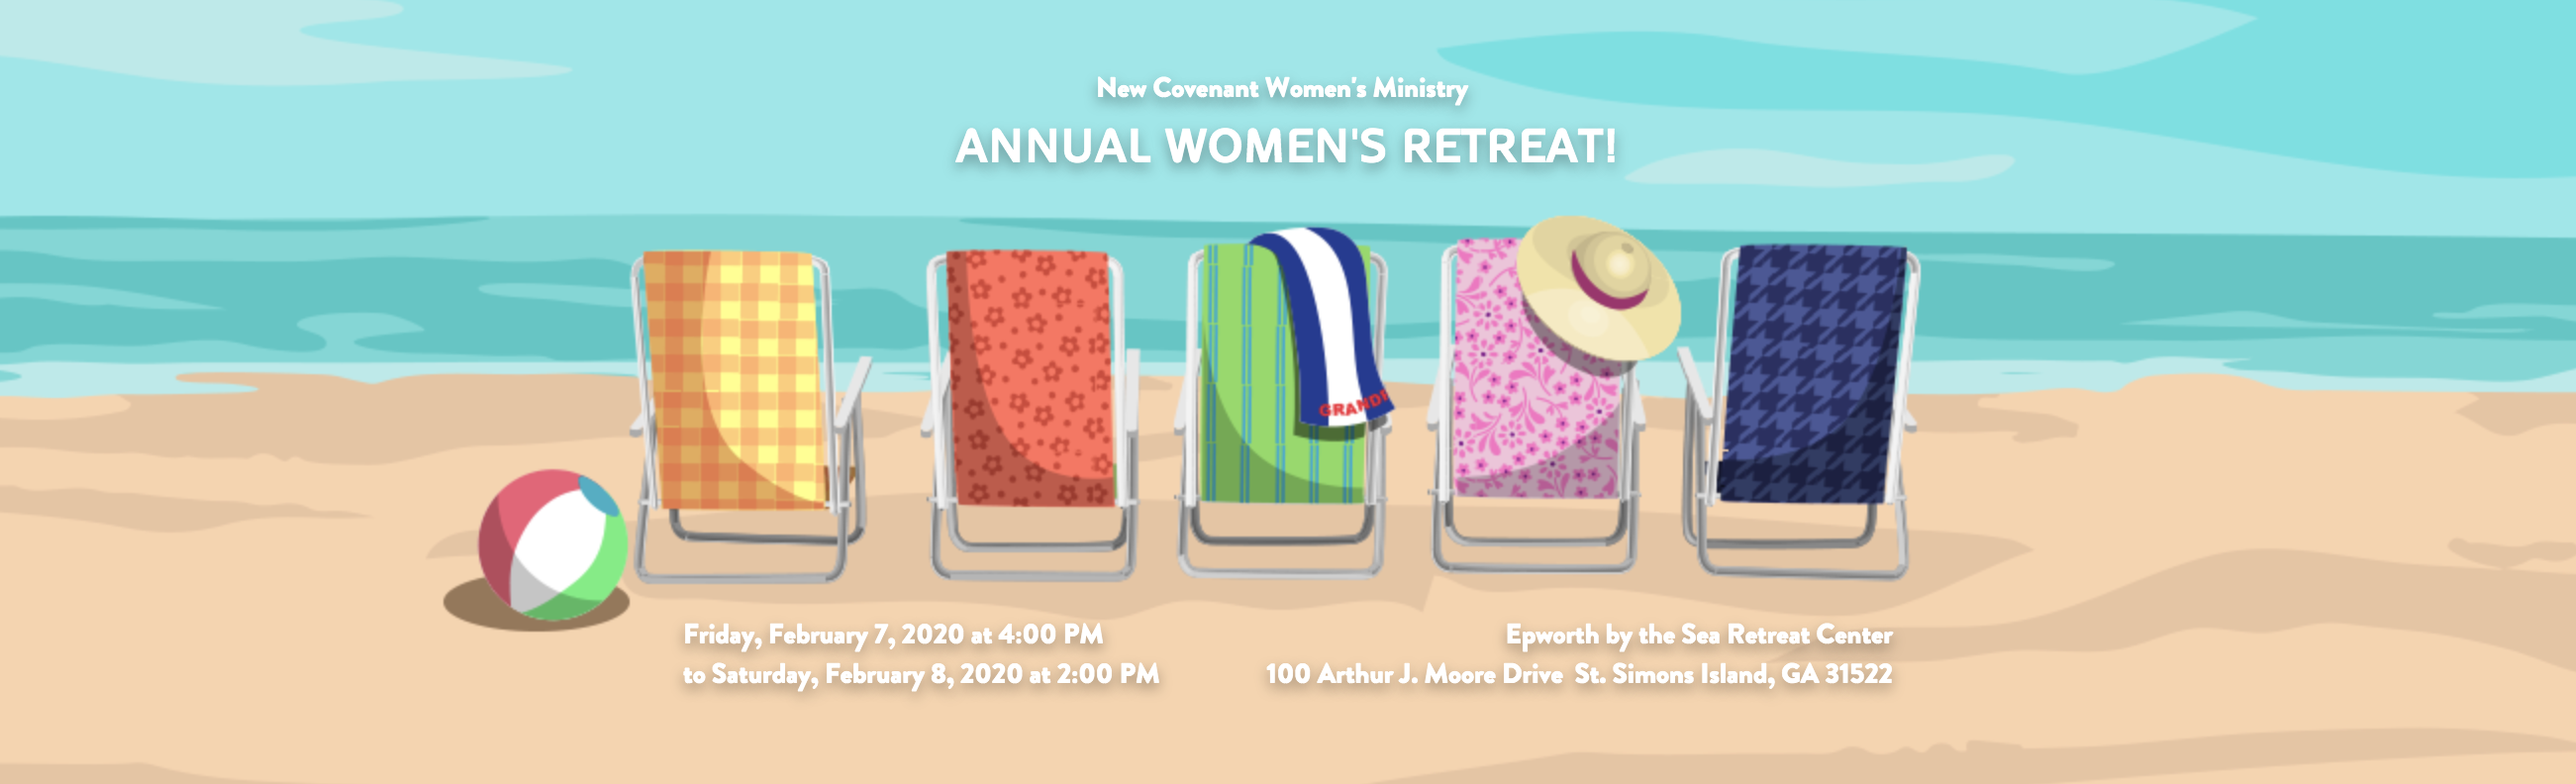 2020 Annual Women's Retreat image